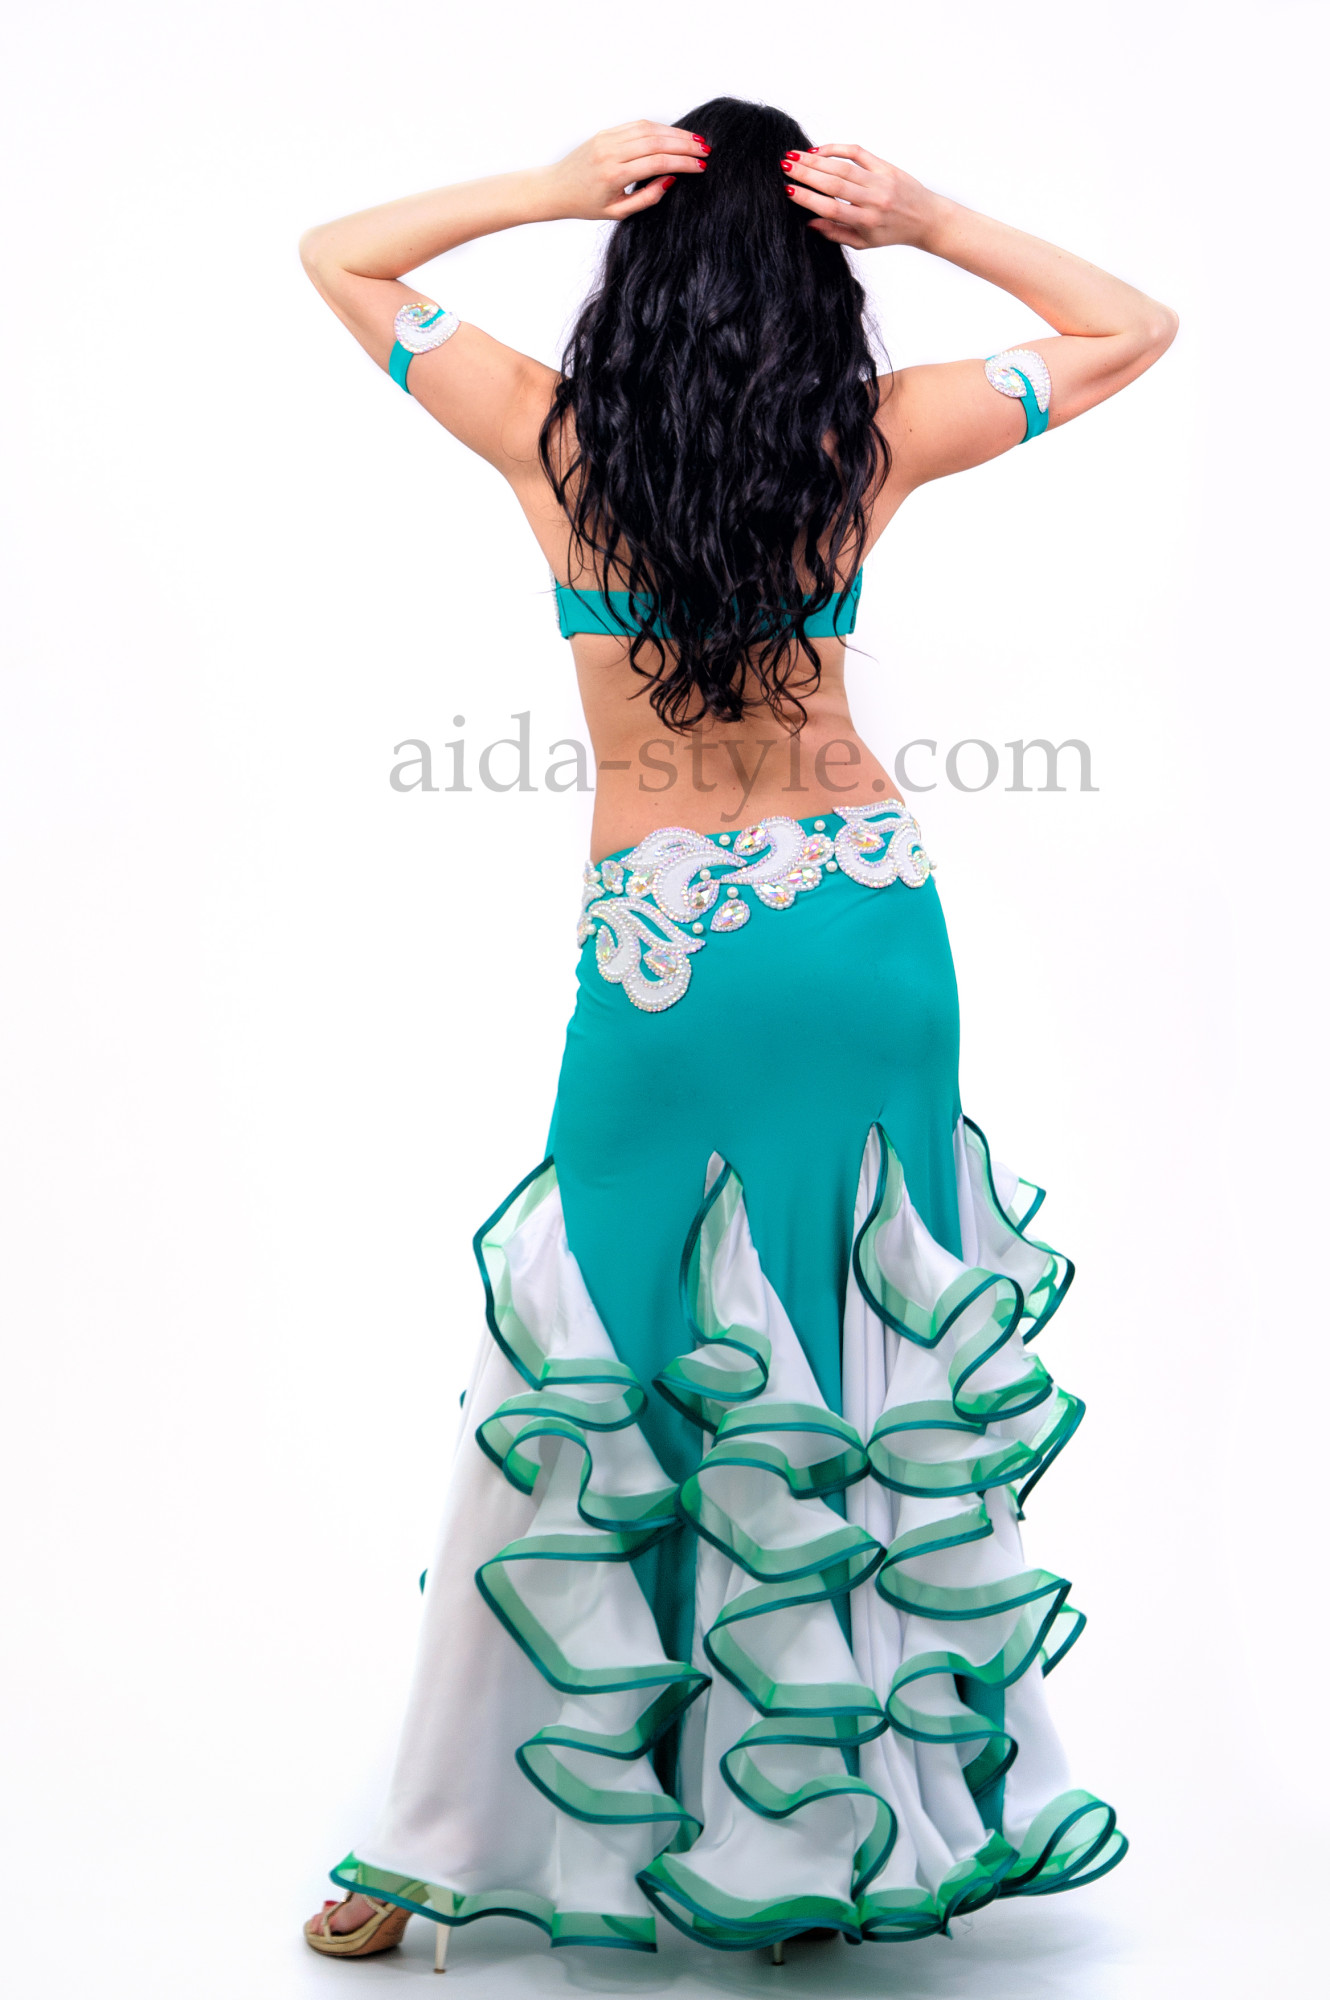 Professional belly dance costume of azure-blue color. Bra and belt are decorated with oriental patterns. The skirt has bouffant ruffles